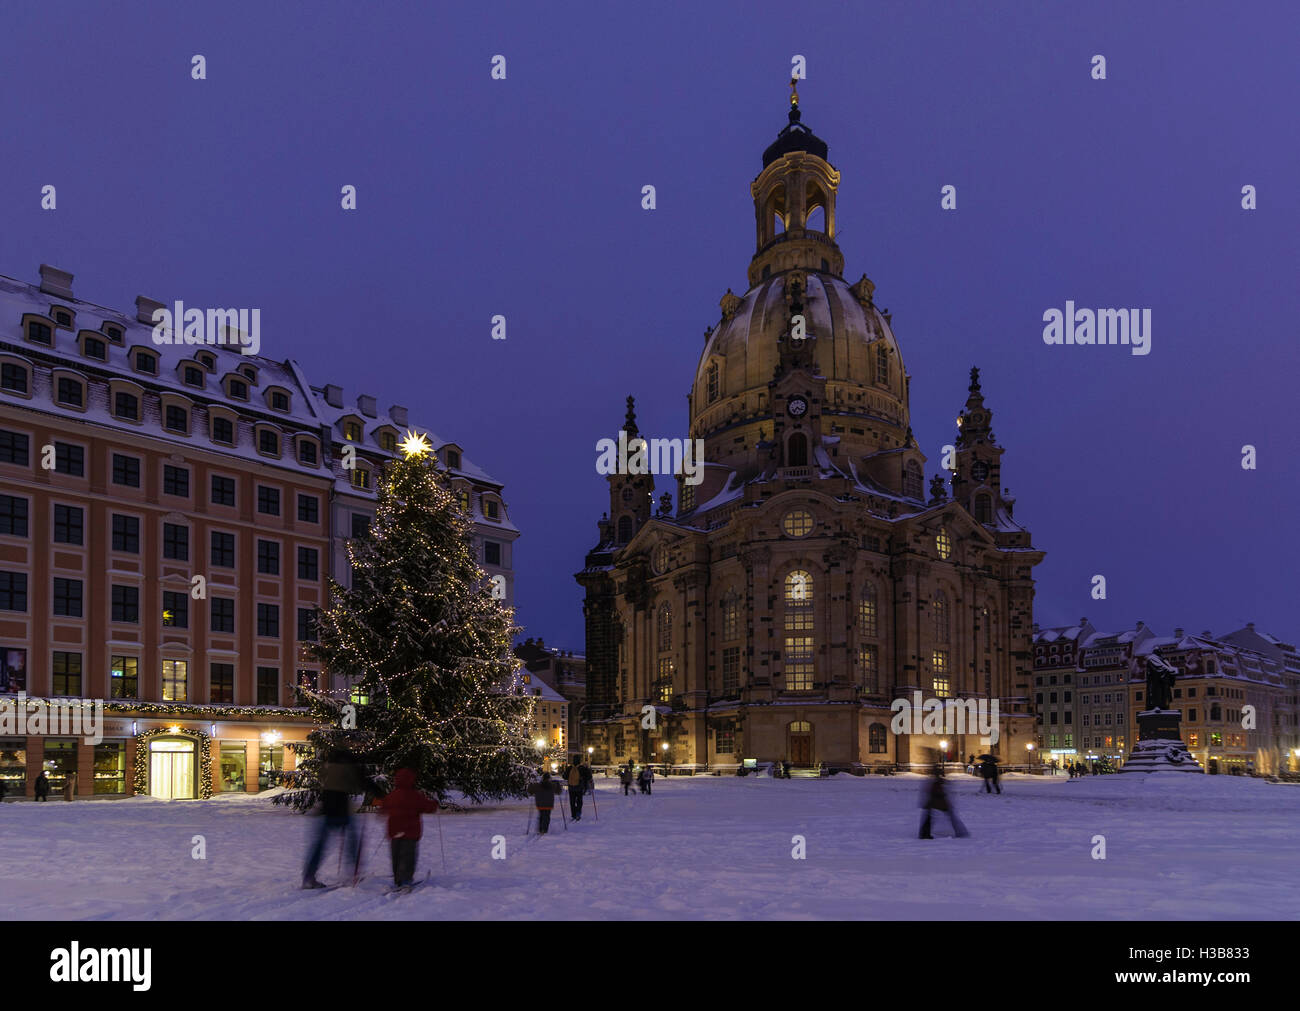 dresden frauenkirche winter stockfotos dresden. Black Bedroom Furniture Sets. Home Design Ideas